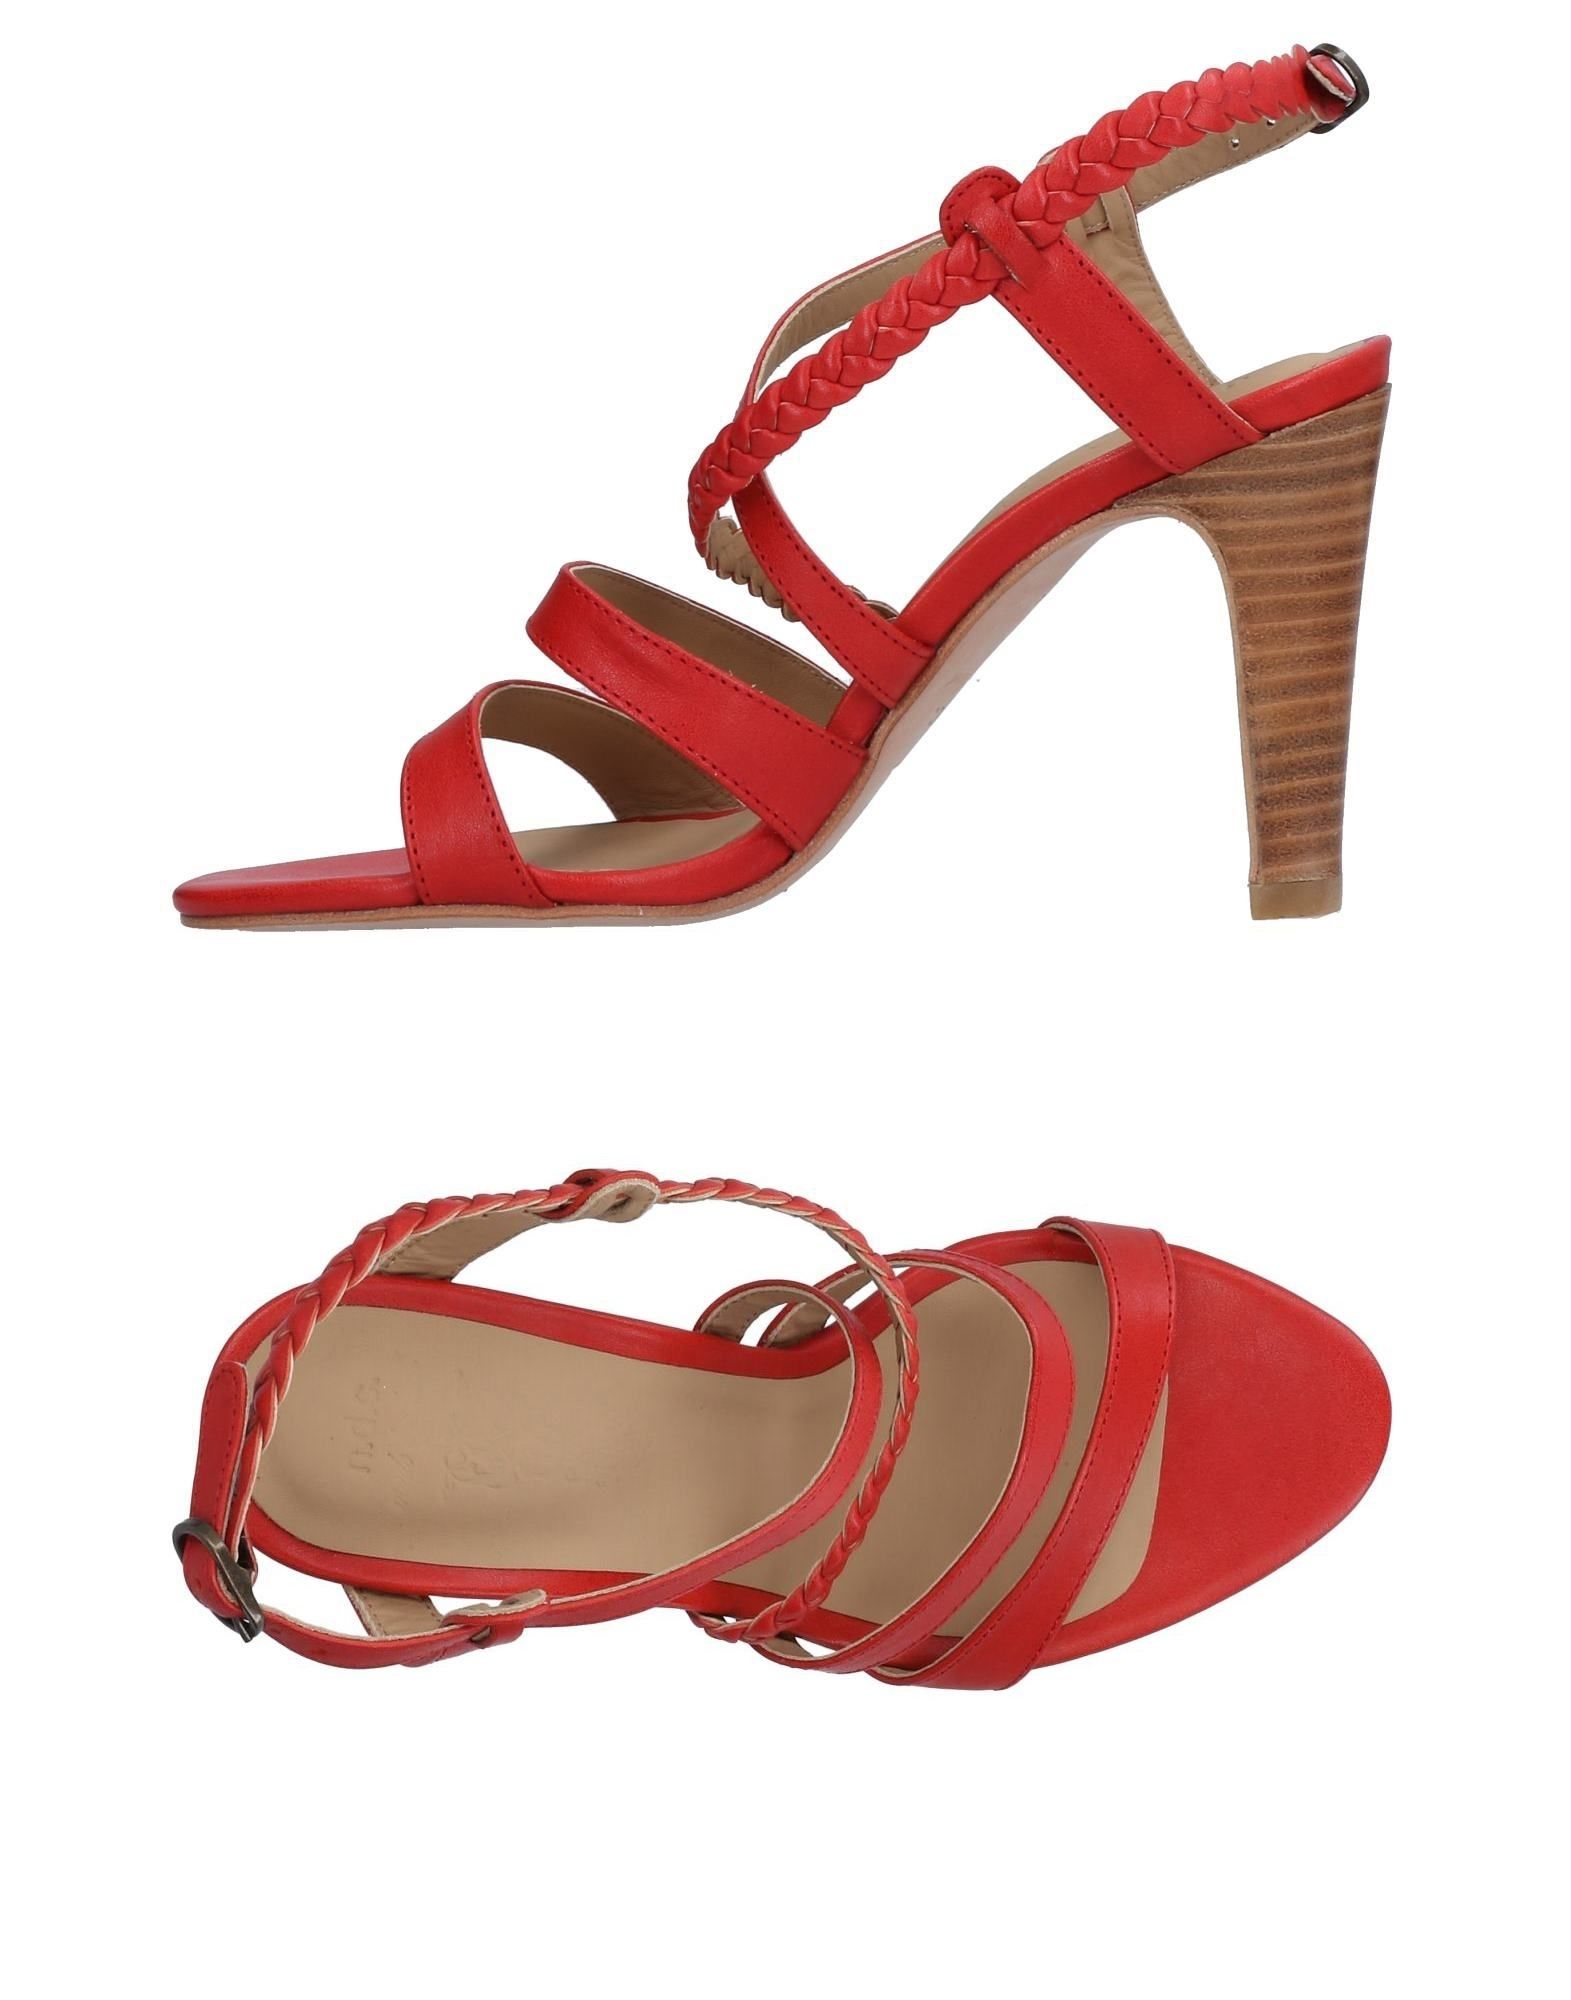 N.D.C. Made By Hand Sandals - Hand Women N.D.C. Made By Hand - Sandals online on  Canada - 11517360OL 90a28a